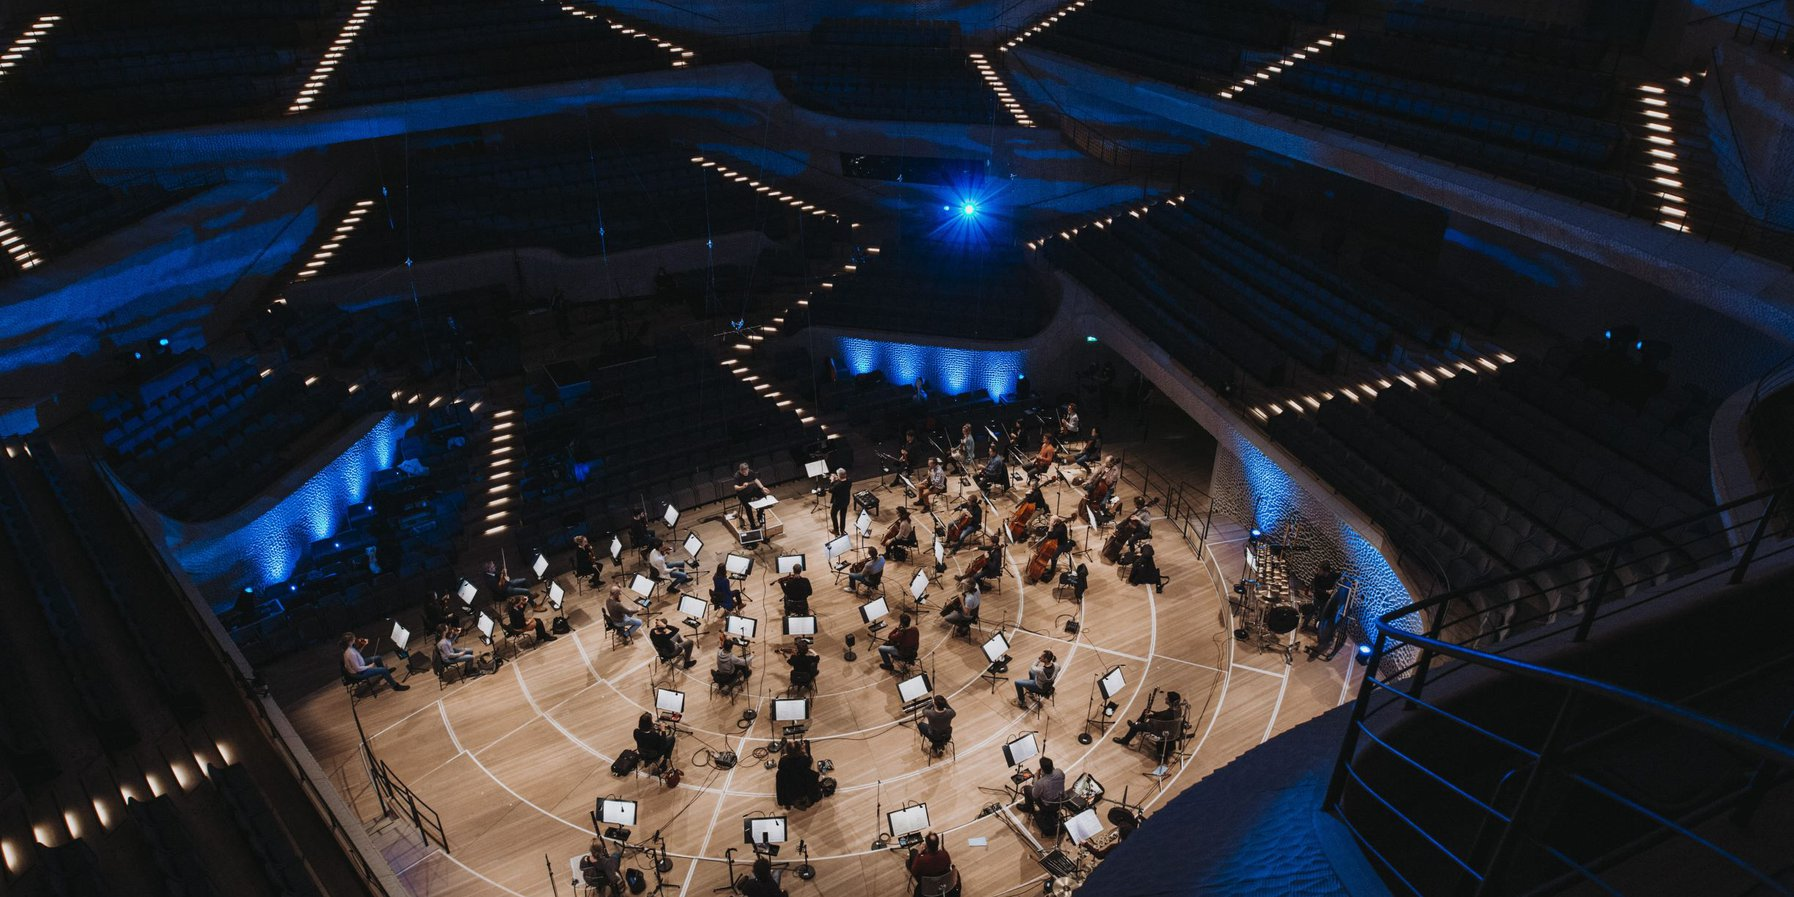 NDR Elbphilharmonie Orchestra in the Grand Hall